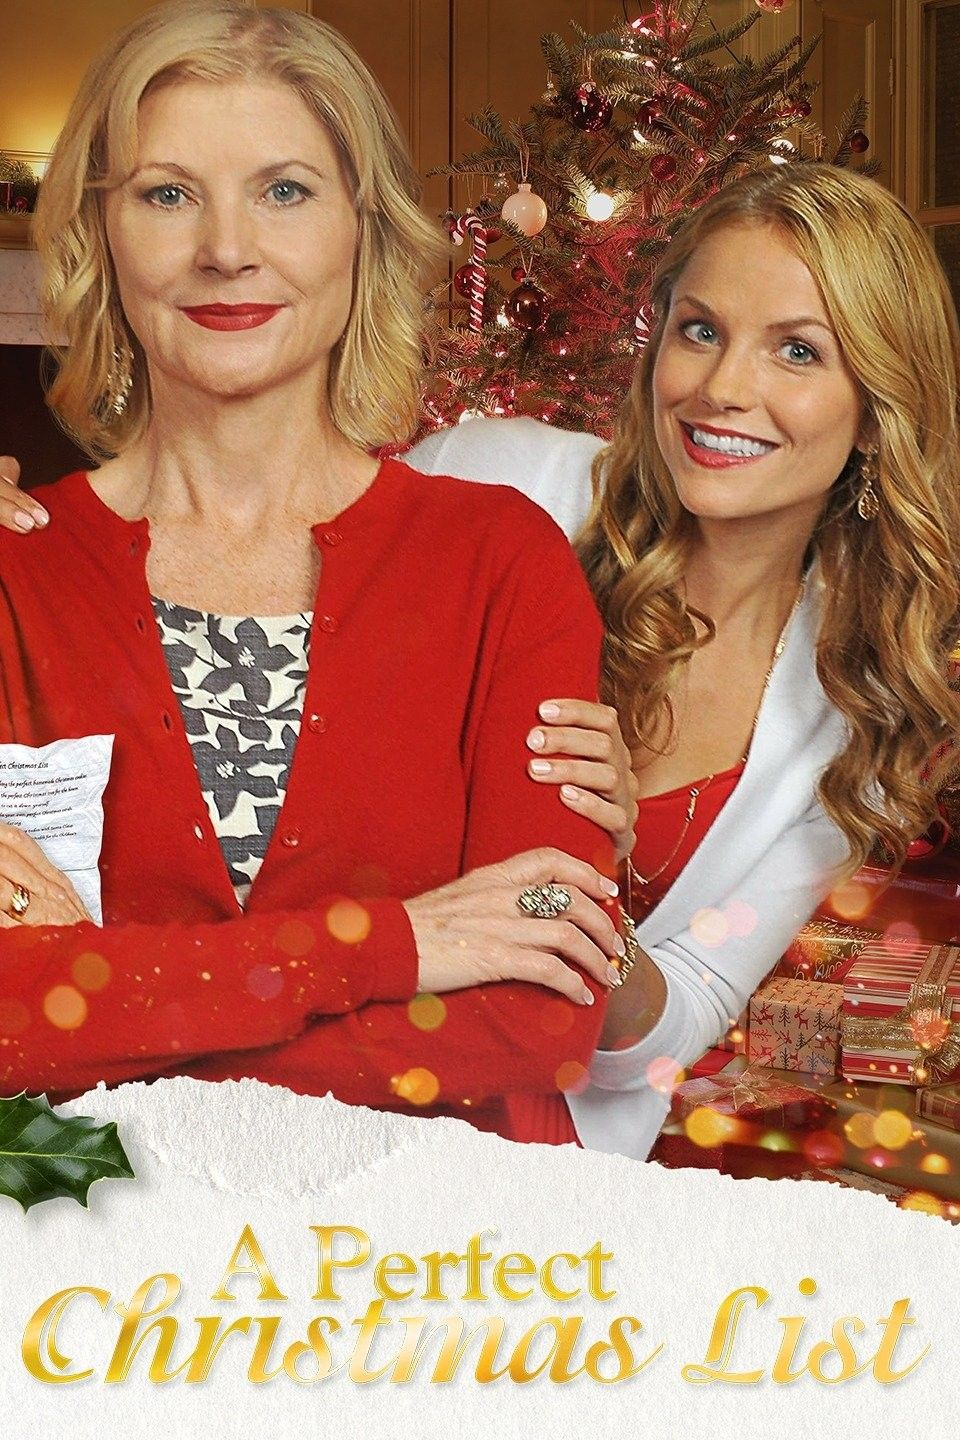 Pin by MiMi Kelly on Hallmark Movies (With images) | Movies, Full movies online free, Christmas ...